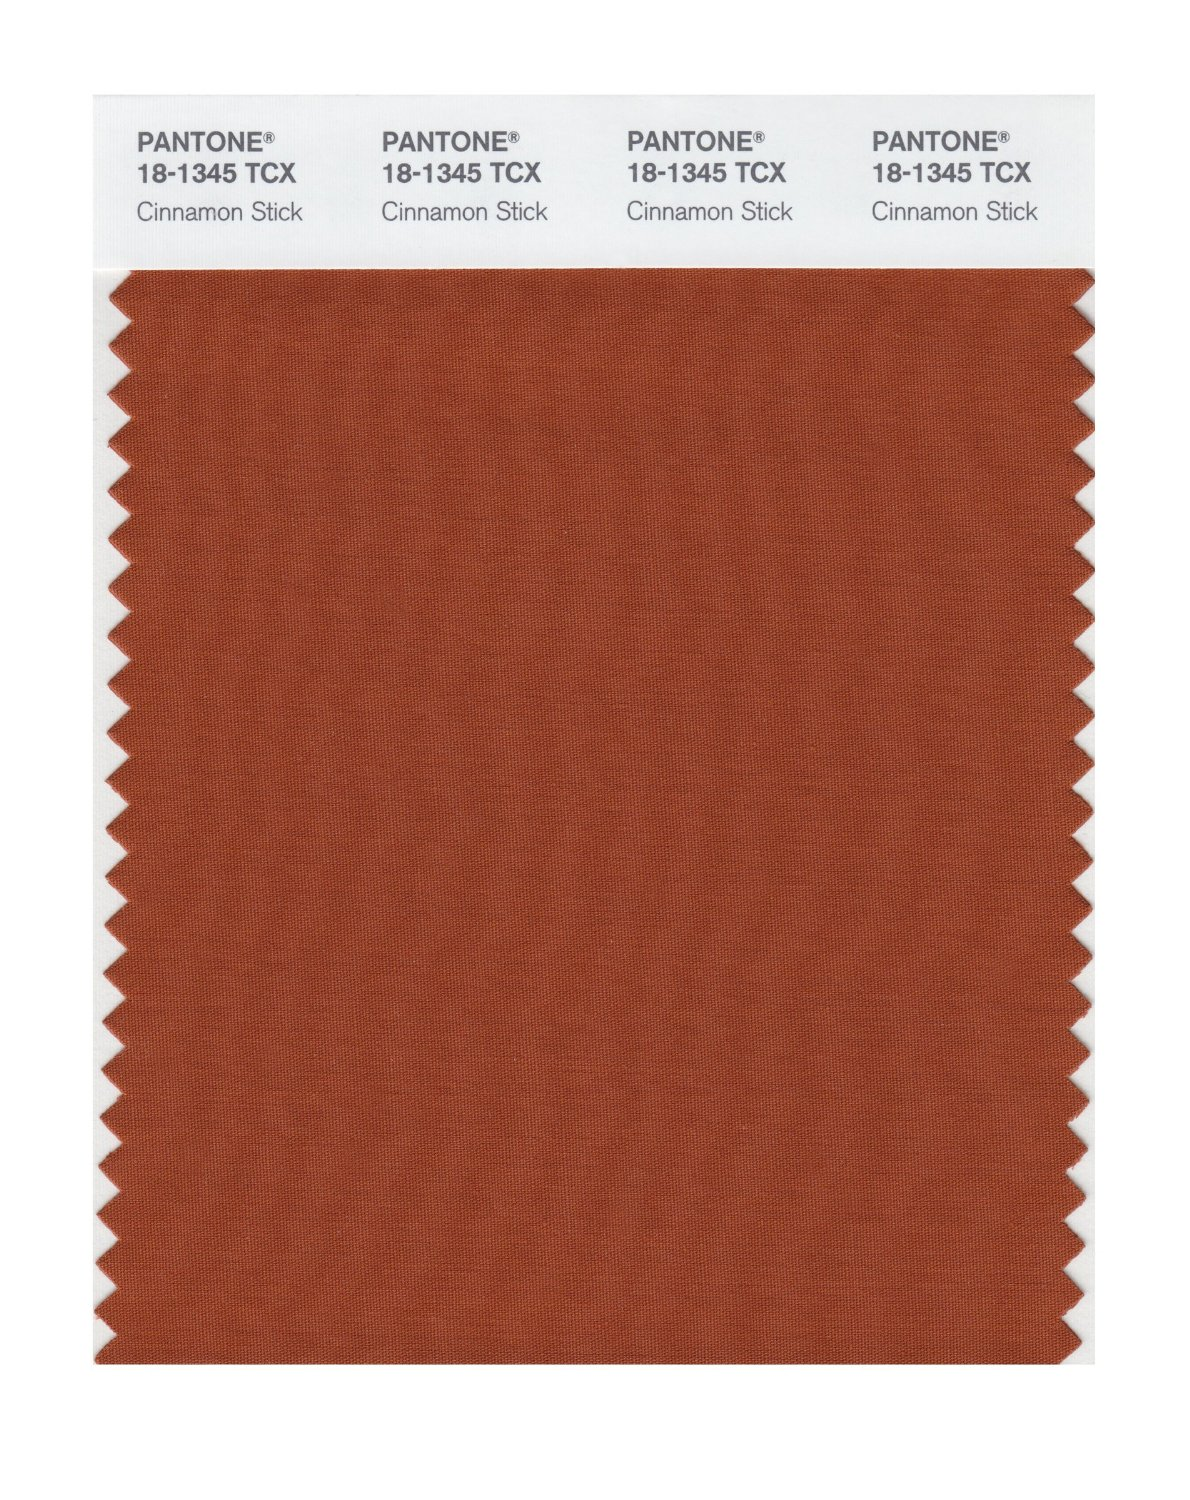 Pantone Smart Swatch 18-1345 Cinnamon Stick